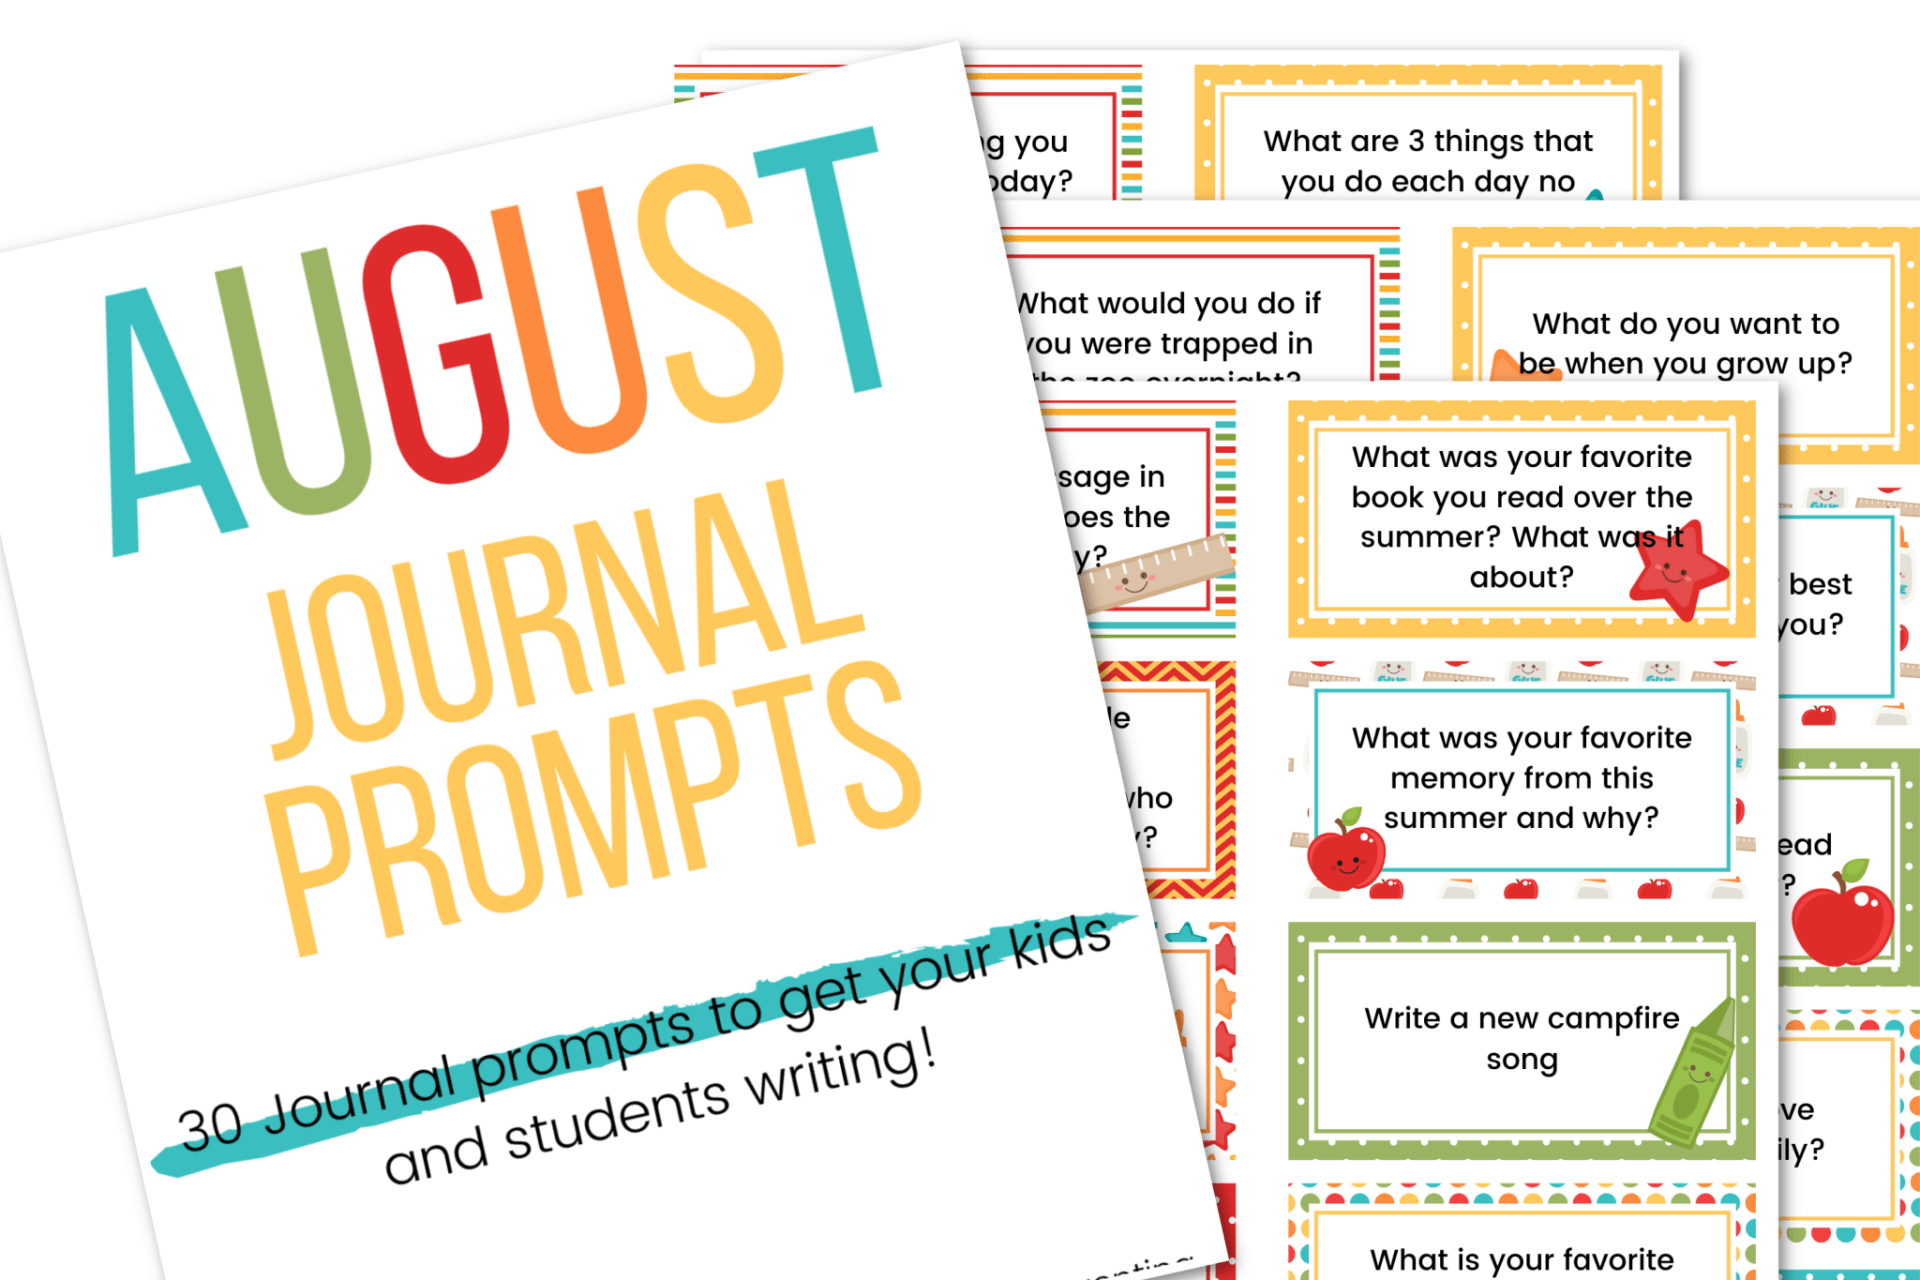 Picture of the August journal prompts for kids.